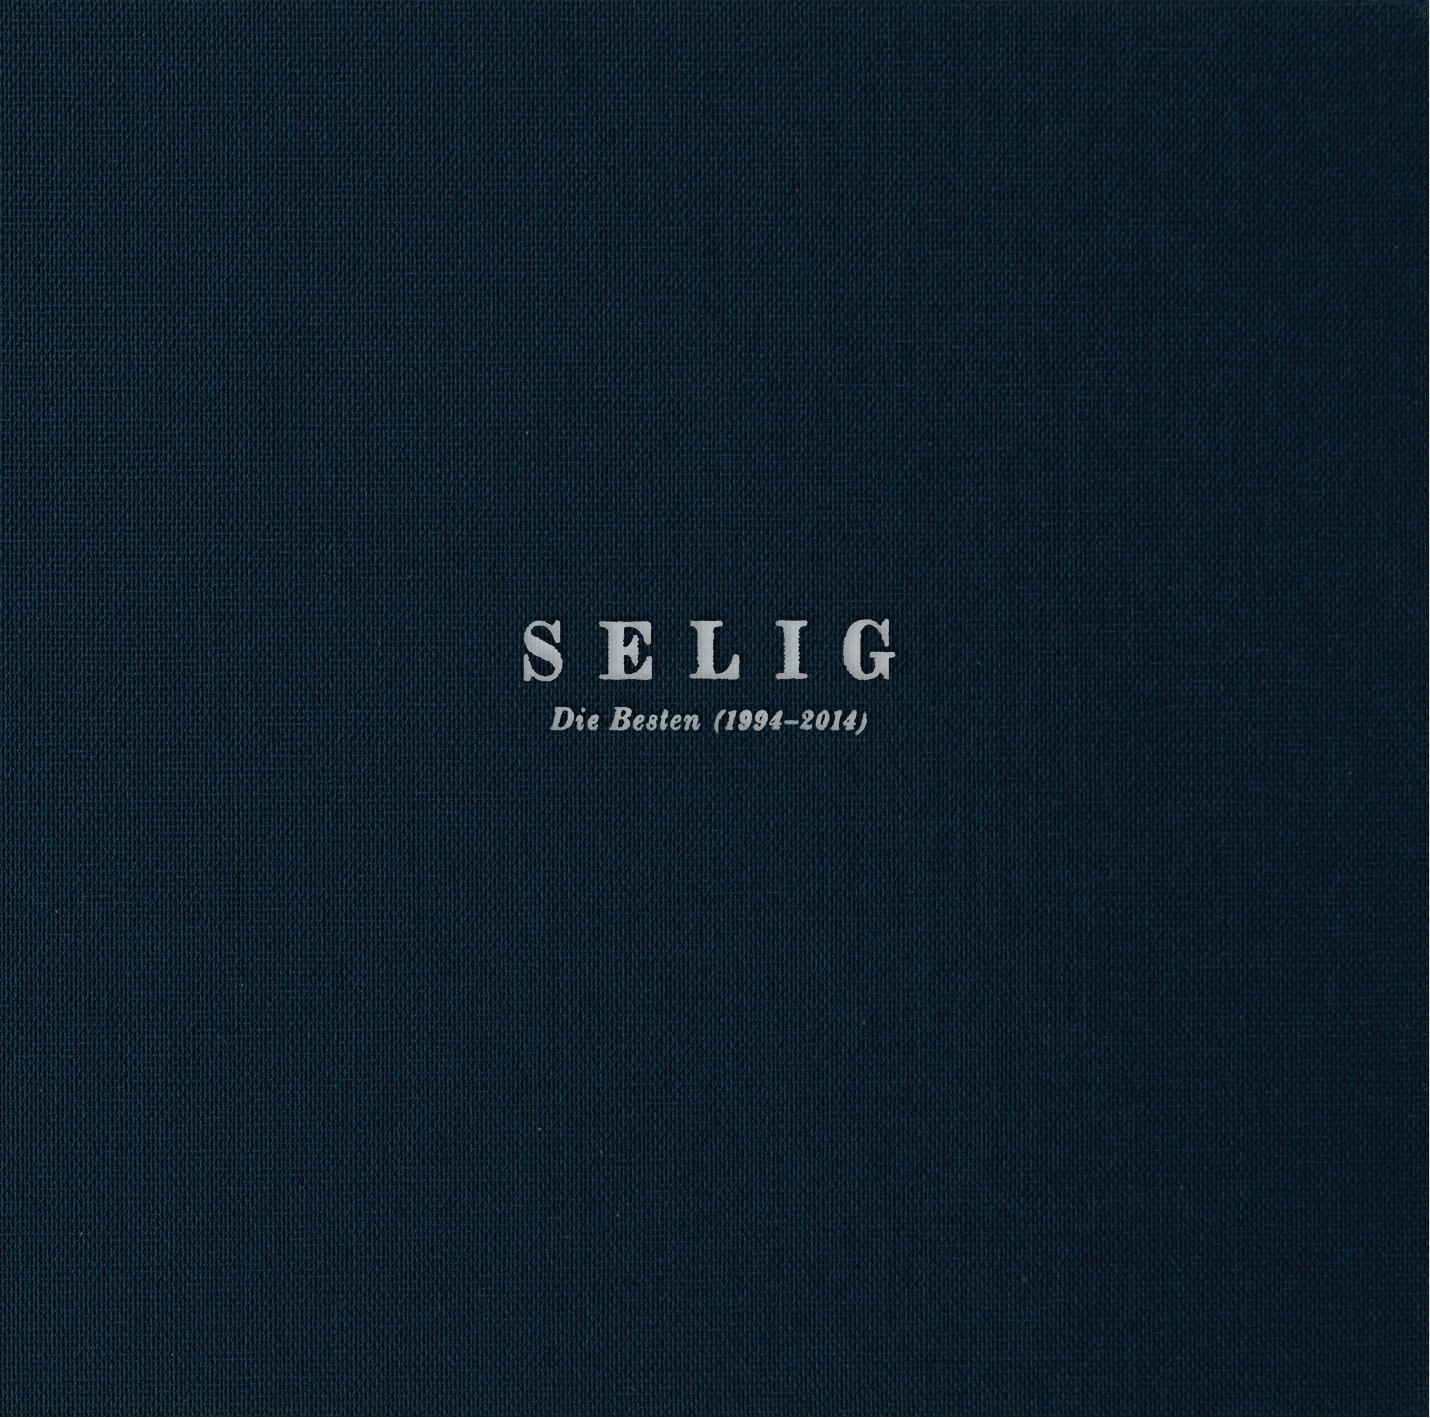 Die Besten (1994 - 2014) - Ltd Deluxe Edition - Selig: Amazon.de: Musik